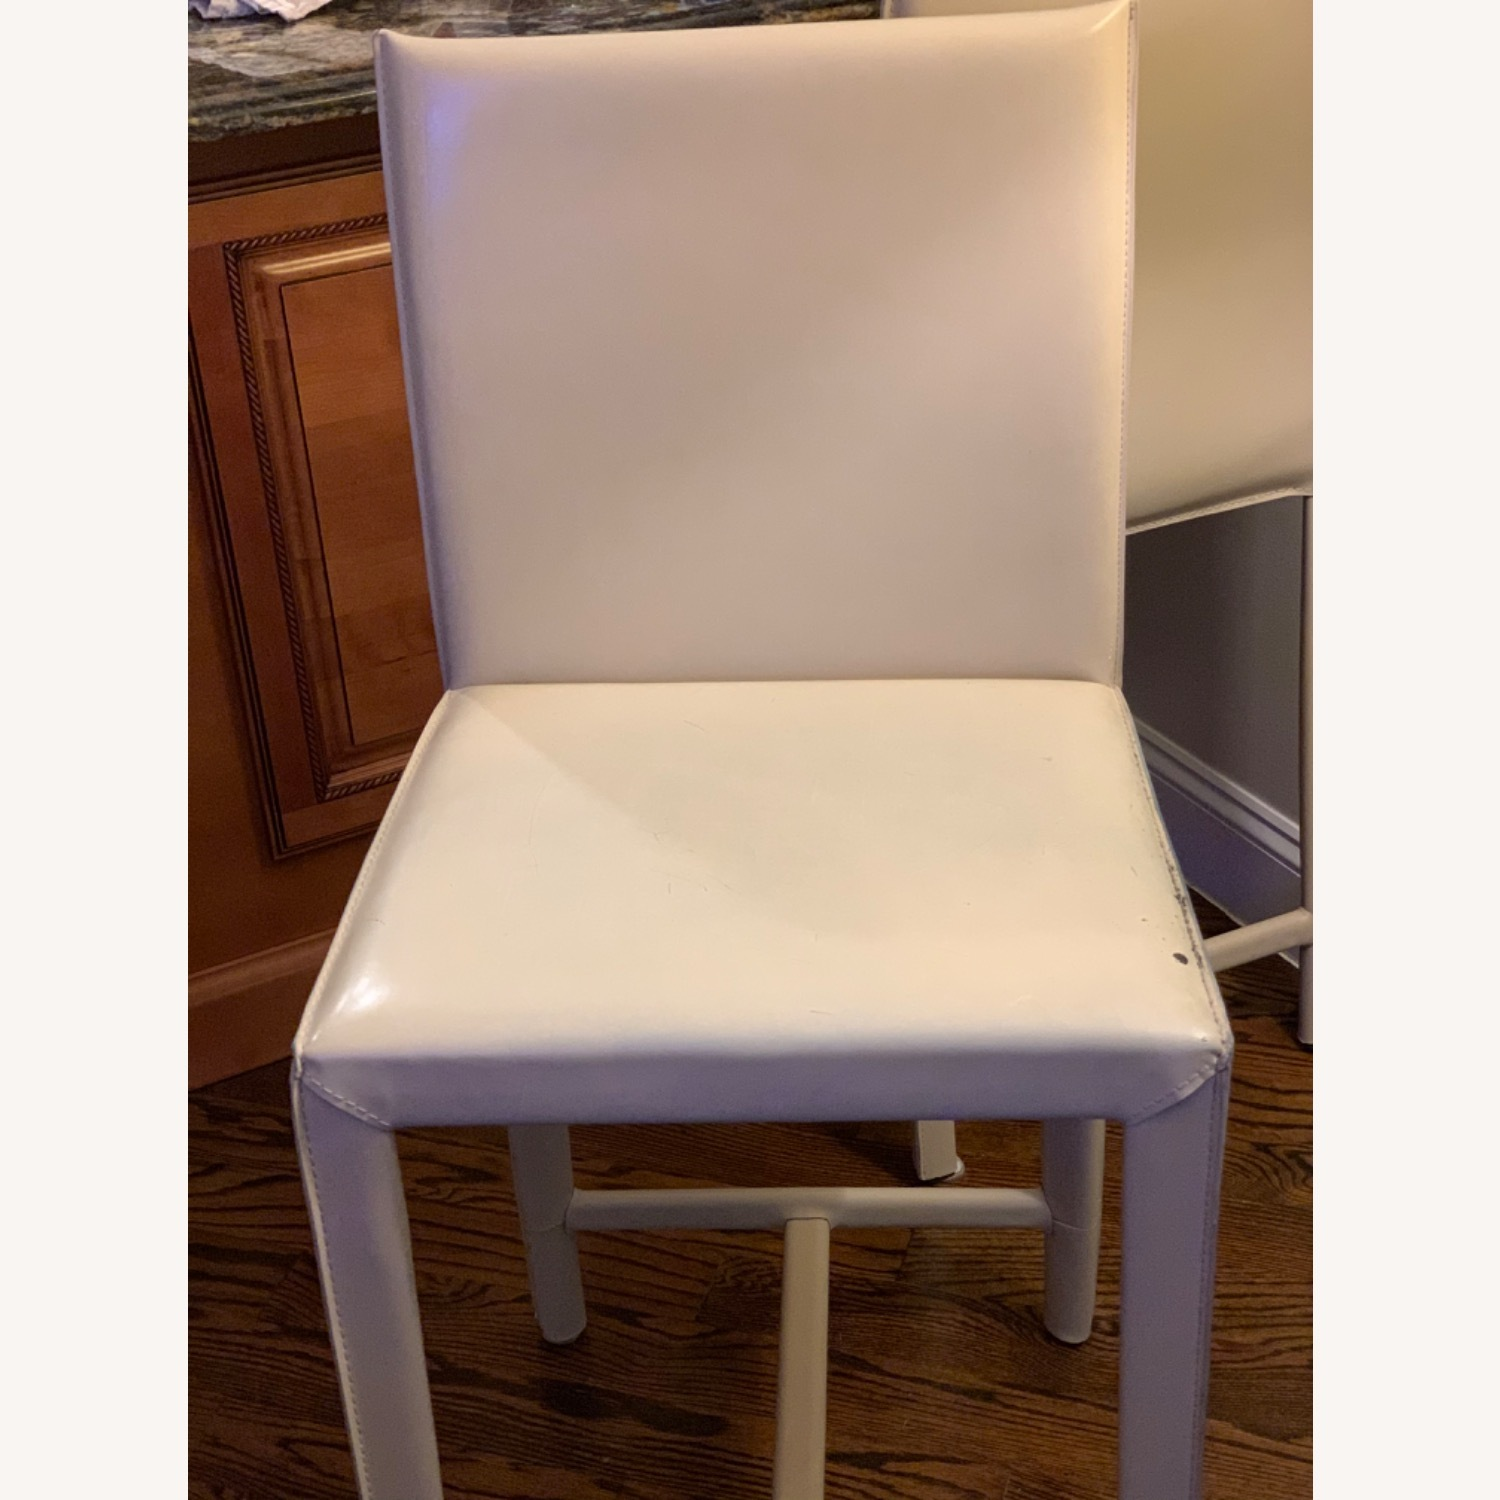 Crate and Barrel Folio Counter Stools - image-1